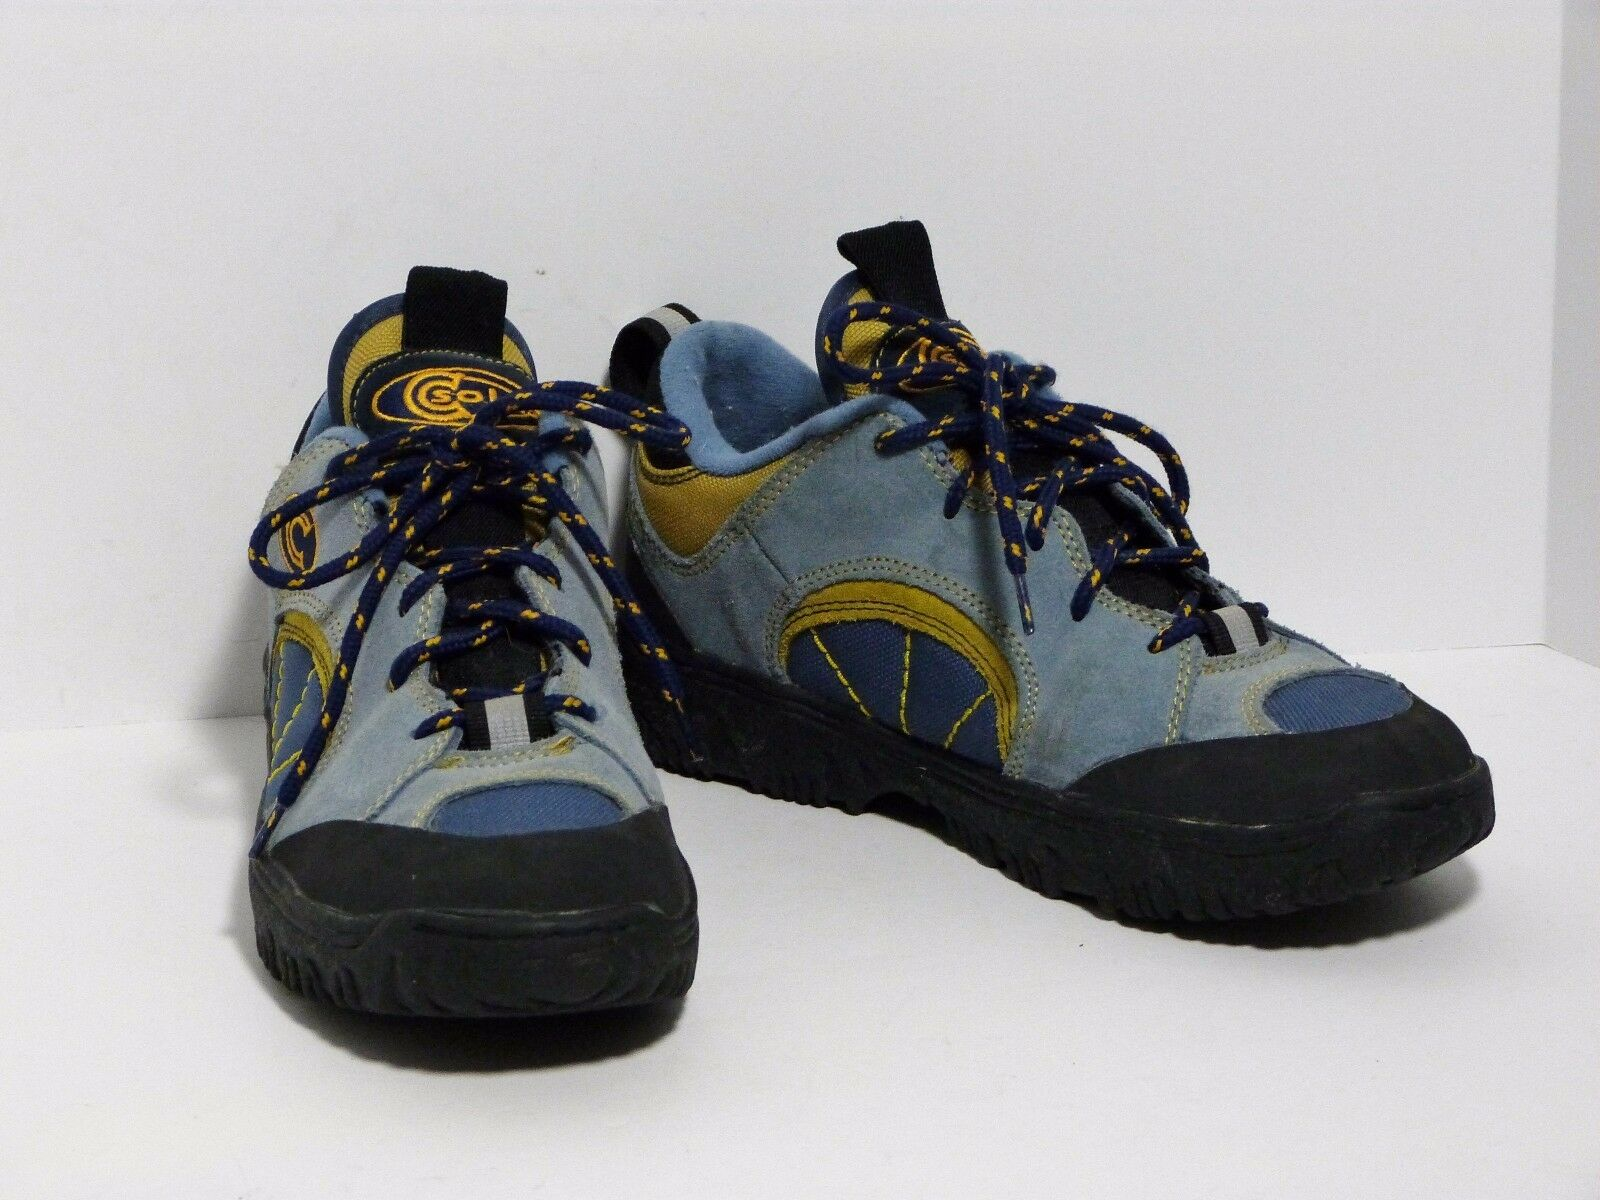 Cannondale CSoles Mountain Bike MTB Cycling shoes bluee Suede Lace Women's 9.5 EUC